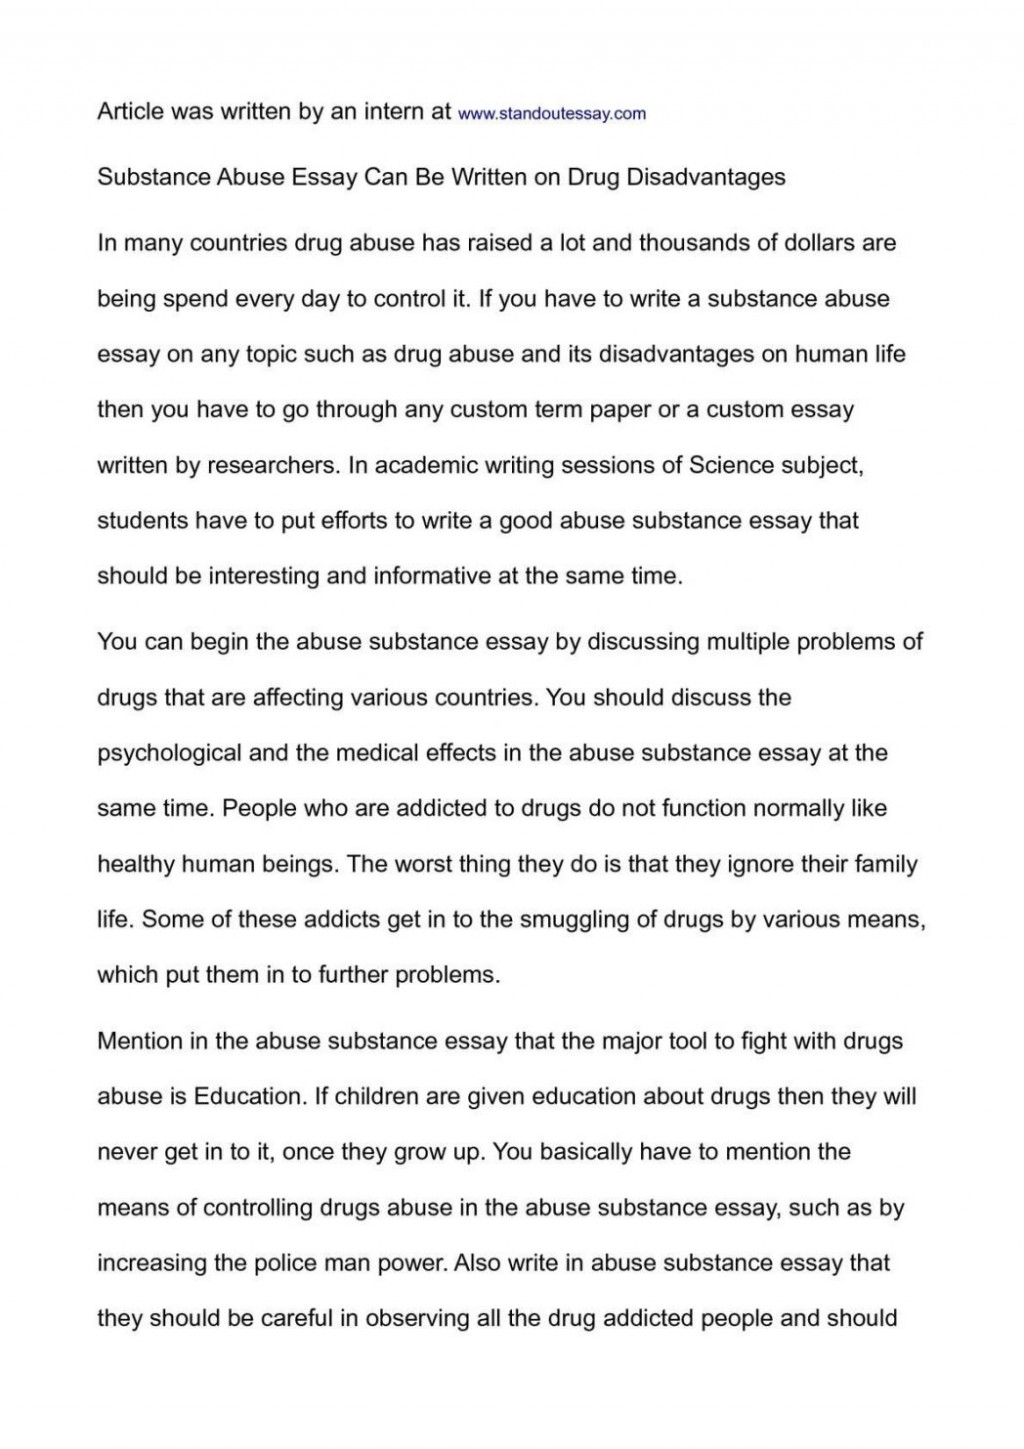 015 National Honor Society Essay Conclusion On Substance Abuse Junior Exampls Topics 1048x1483 Outstanding Application Example Structure High School Examples Large